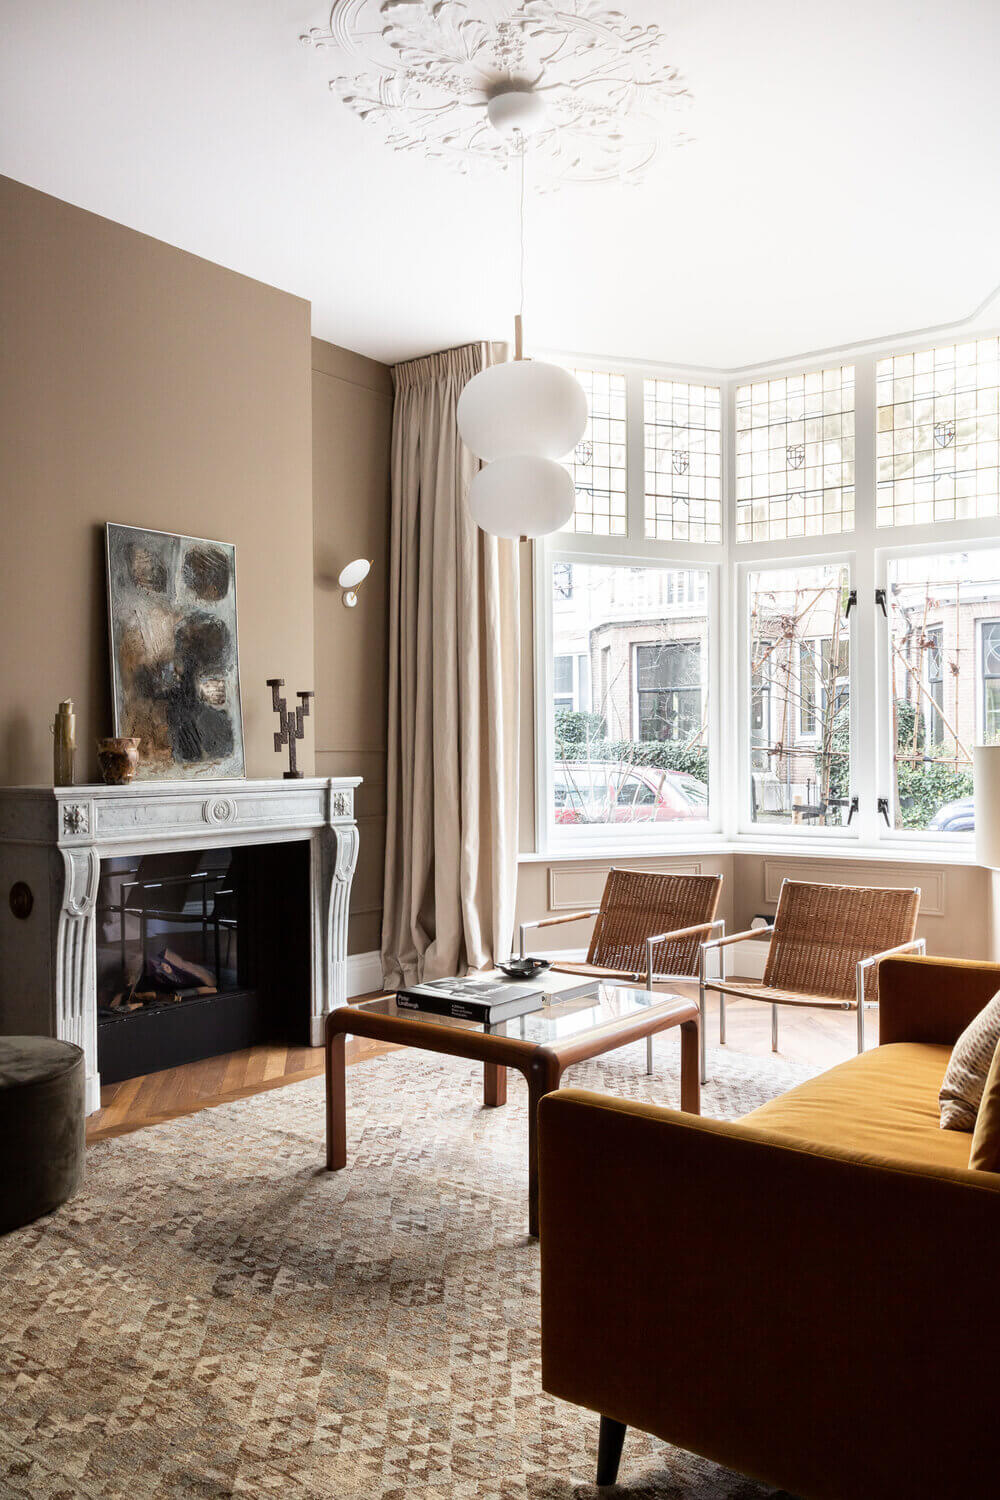 Timeless Elegance and Dusty Color Tones in a Dutch Townhouse